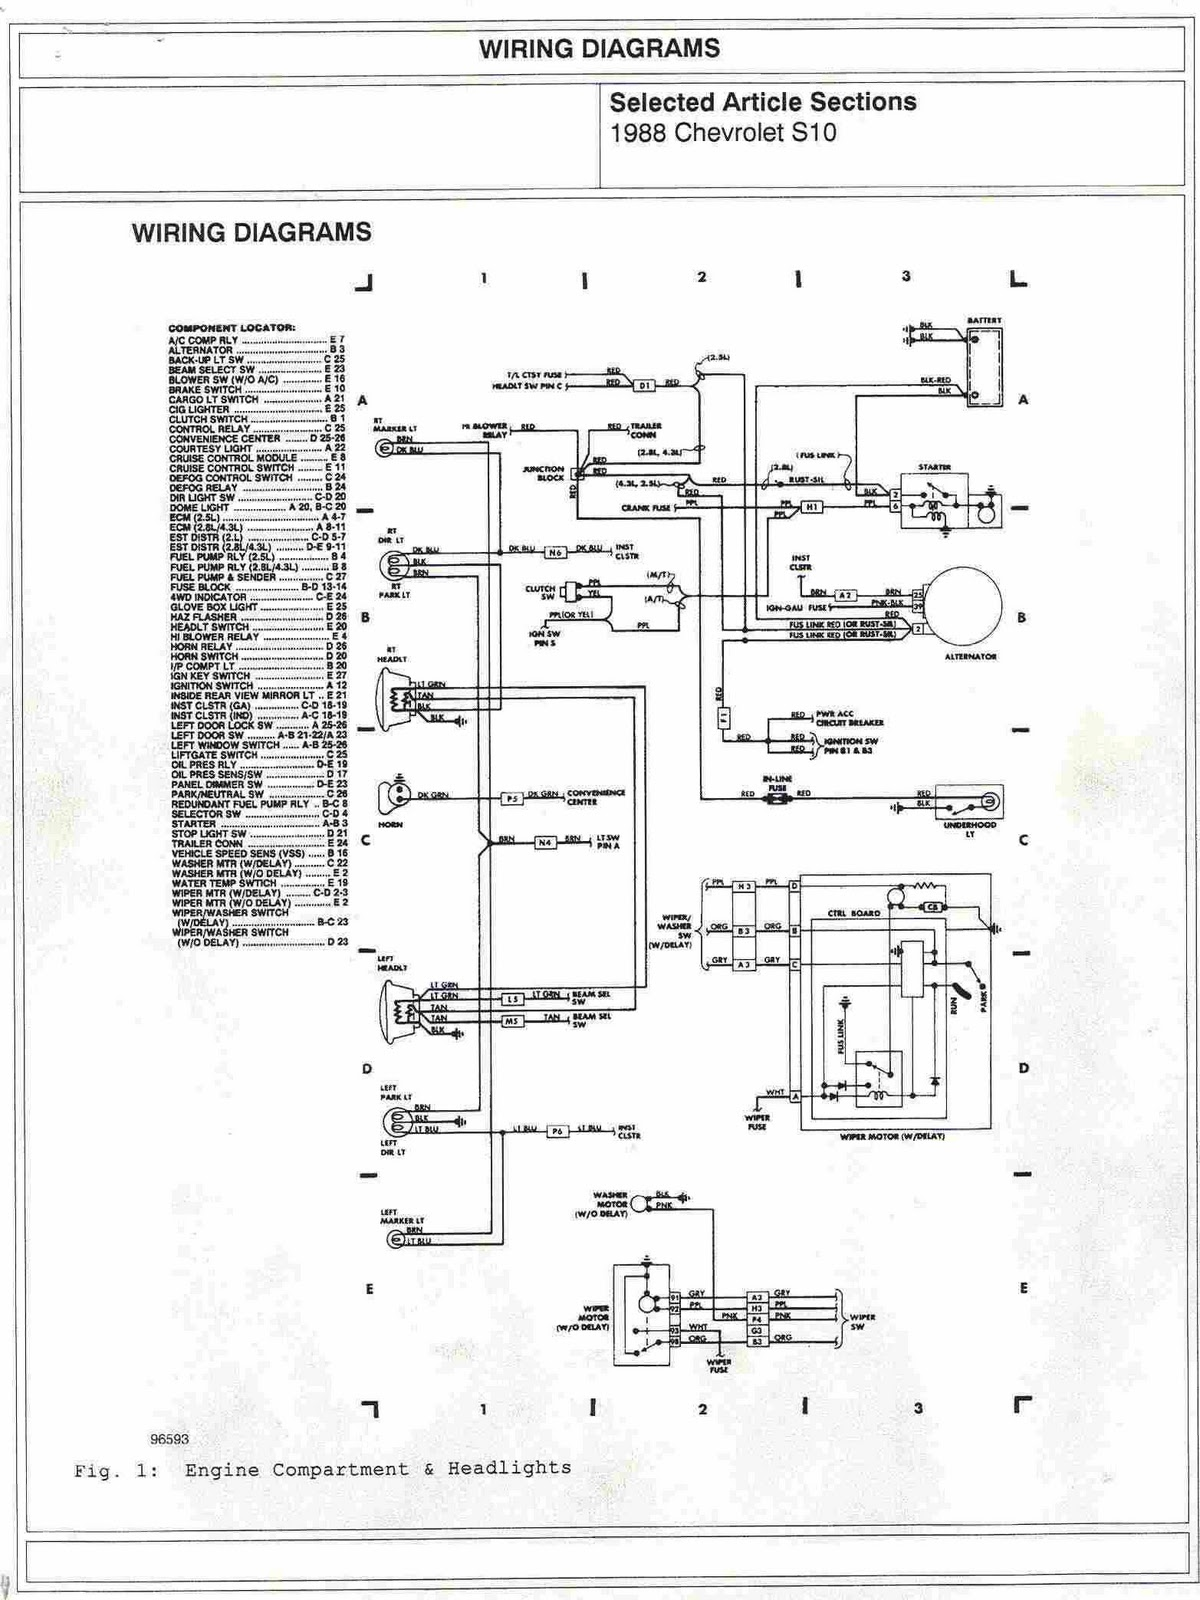 1990 Chevy Headlight Wiring Diagram Library 1988 K5 Blazer 1996 S10 Diagramrhsvlcus